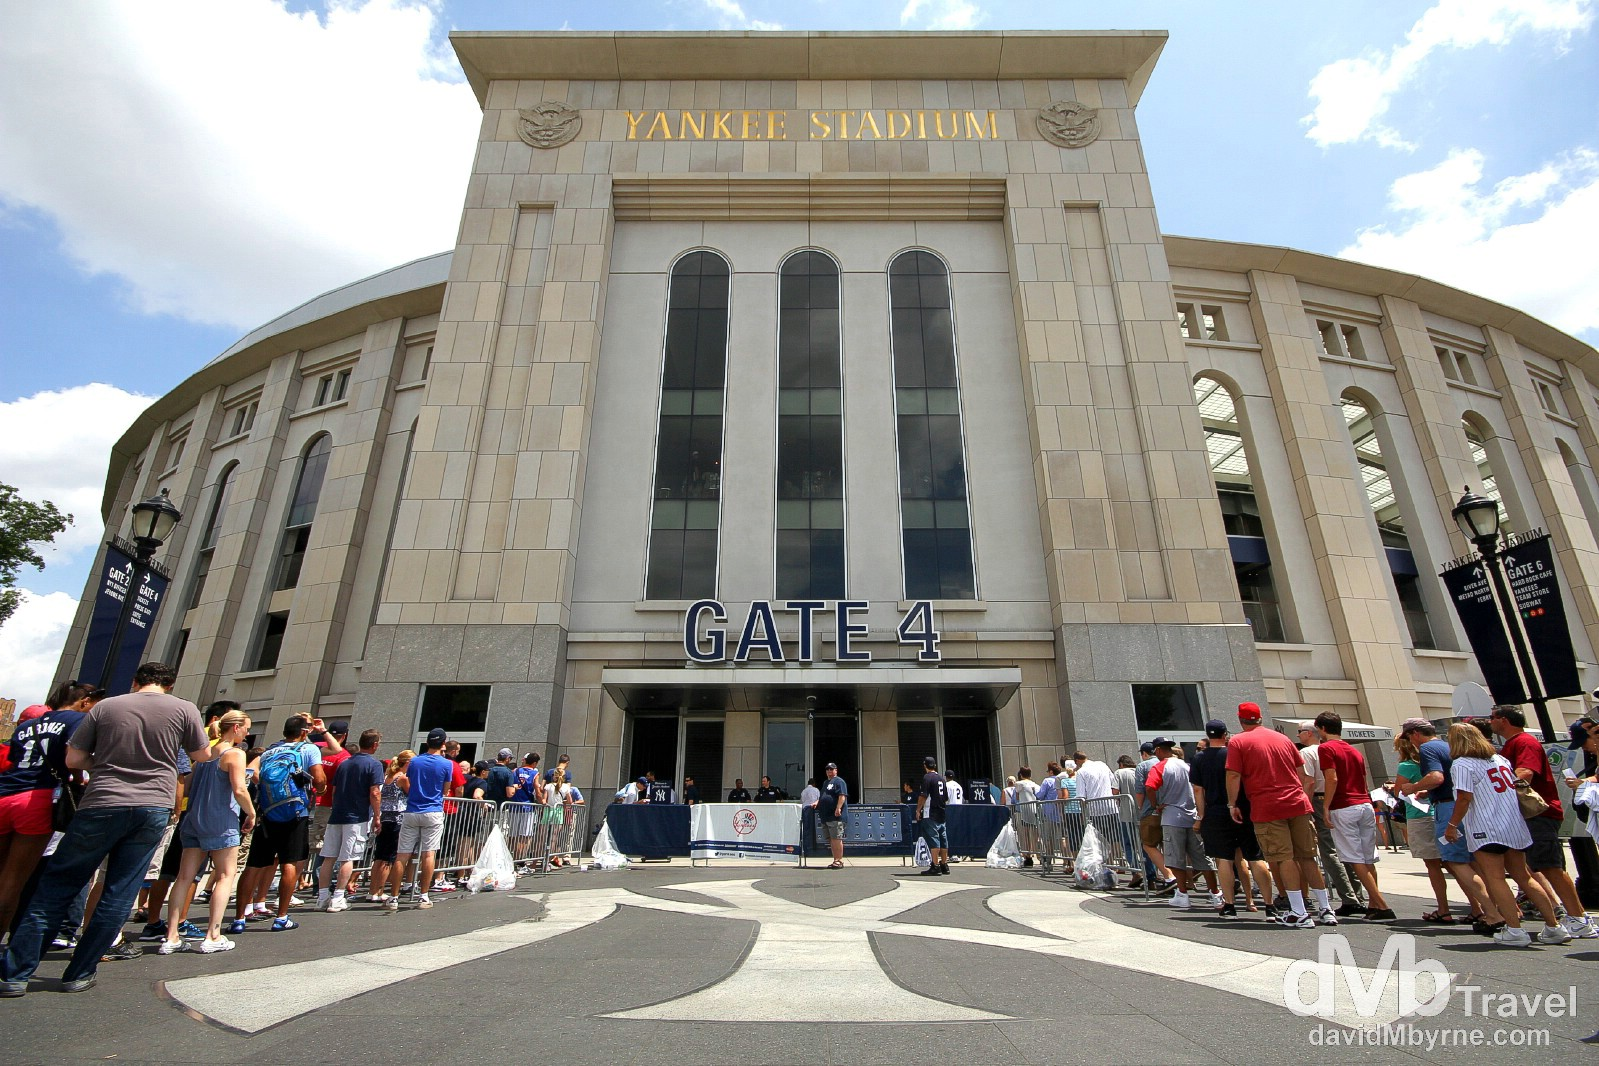 The iconic NY insignia outside Gate 4, Yankee Stadium, The Bronx, New York. July 14th 2013.